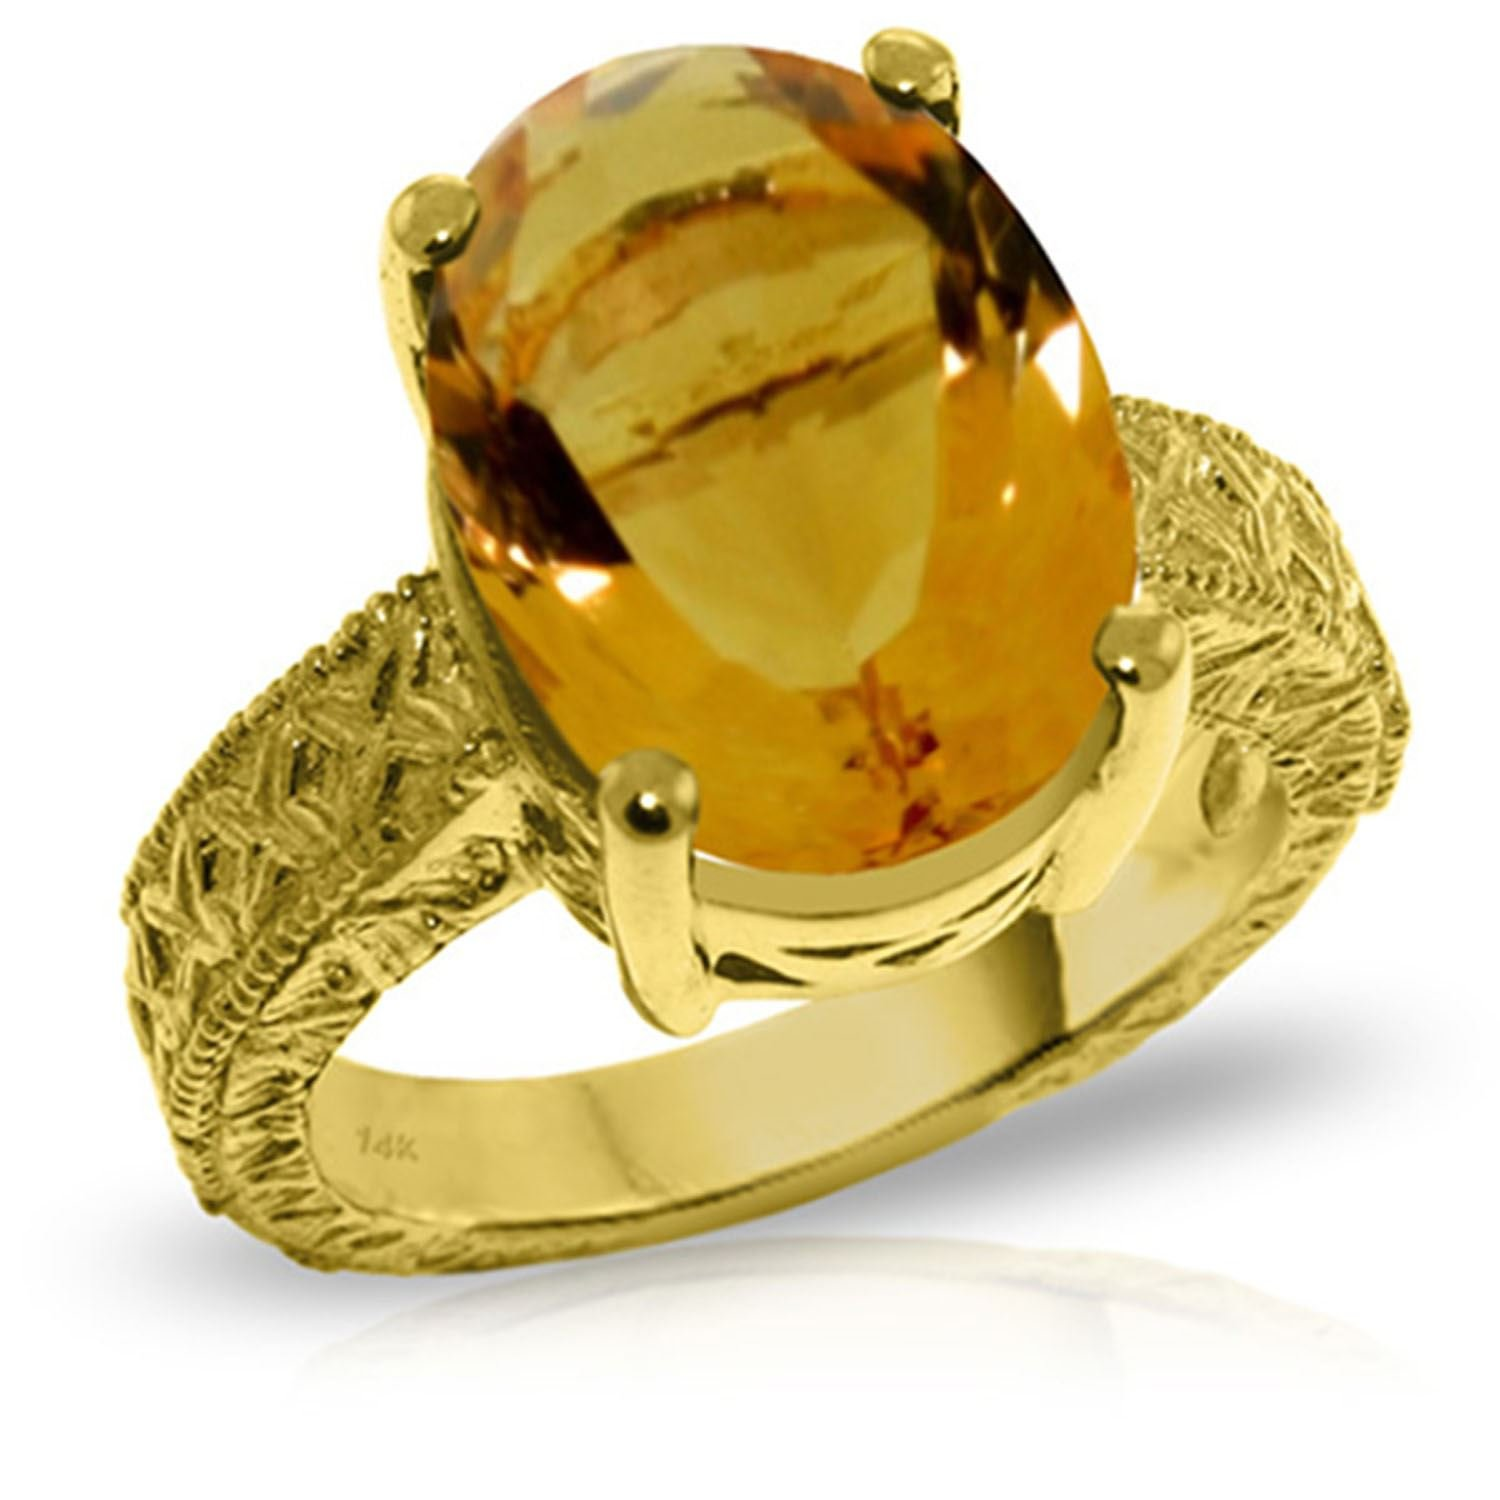 ALARRI 14K Solid Gold Ring w/ Natural Oval Citrine With Ring Size 5